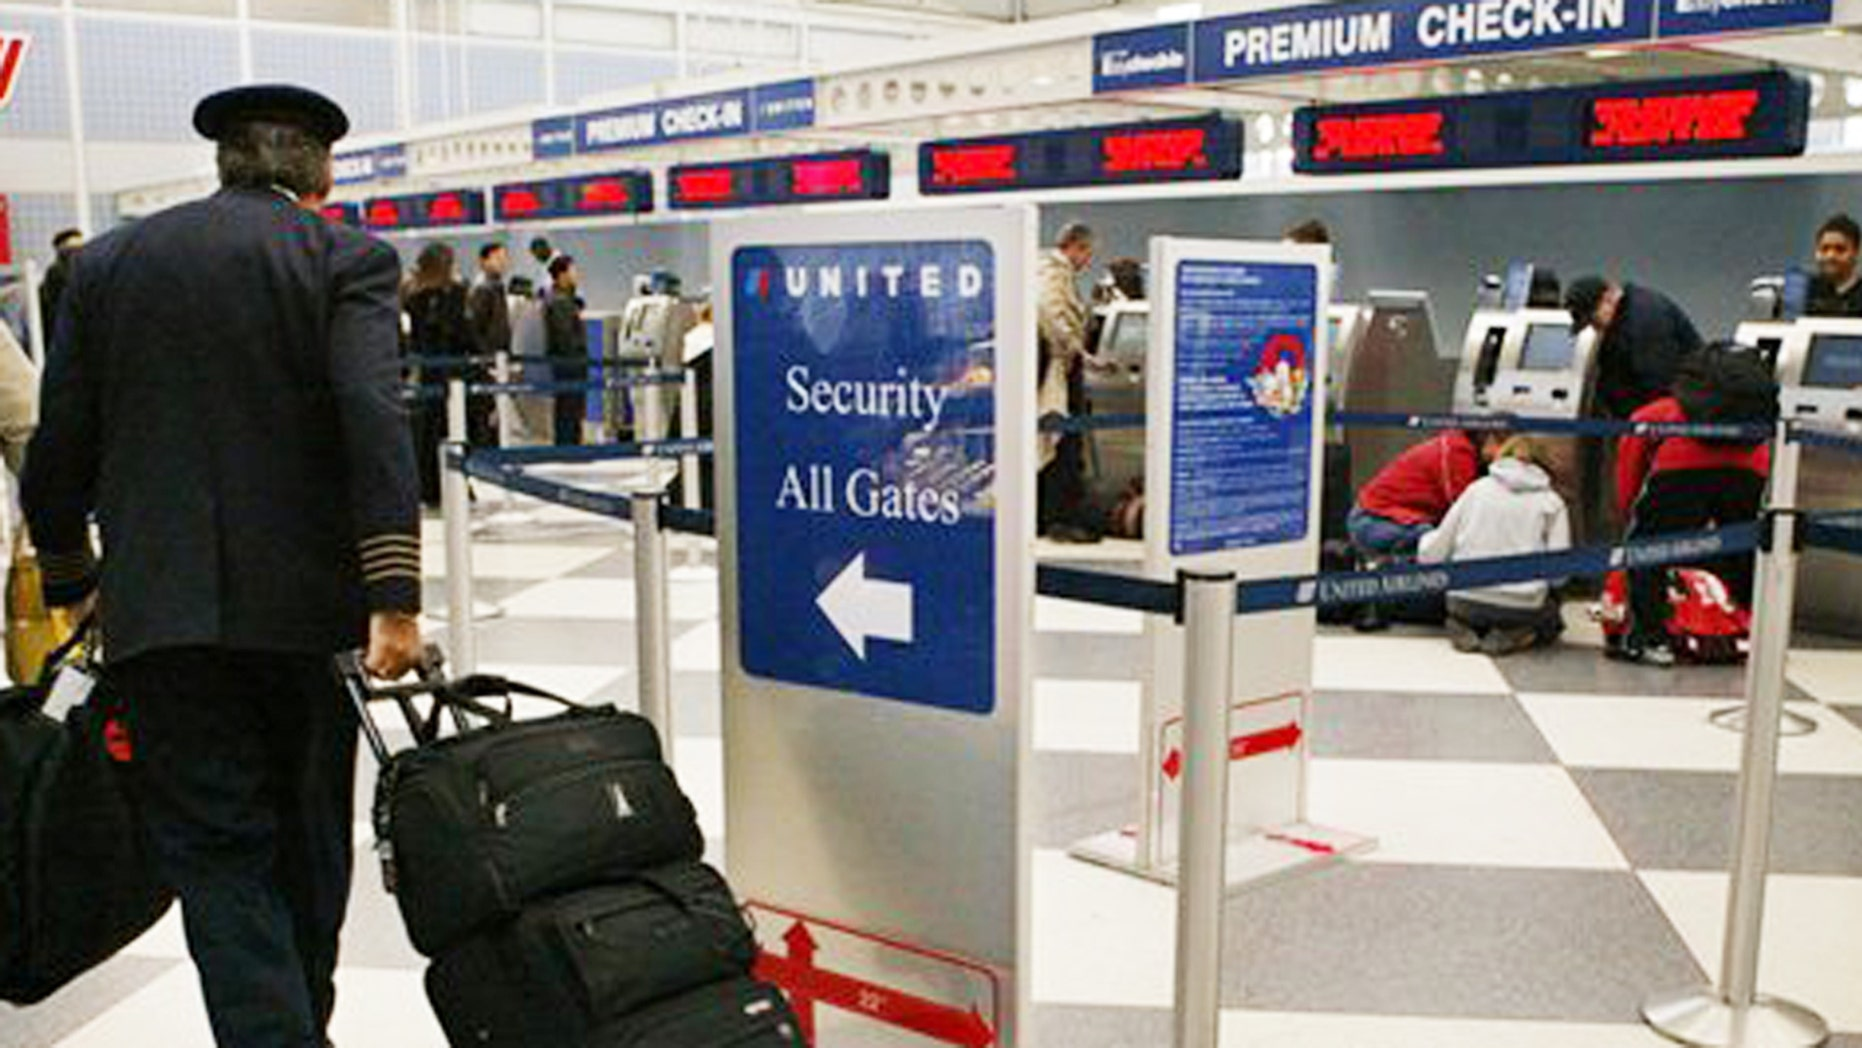 A United Airlines pilot walks to security check point at Chicago's O'Hare International Airport, one of the nation's busiest airports.